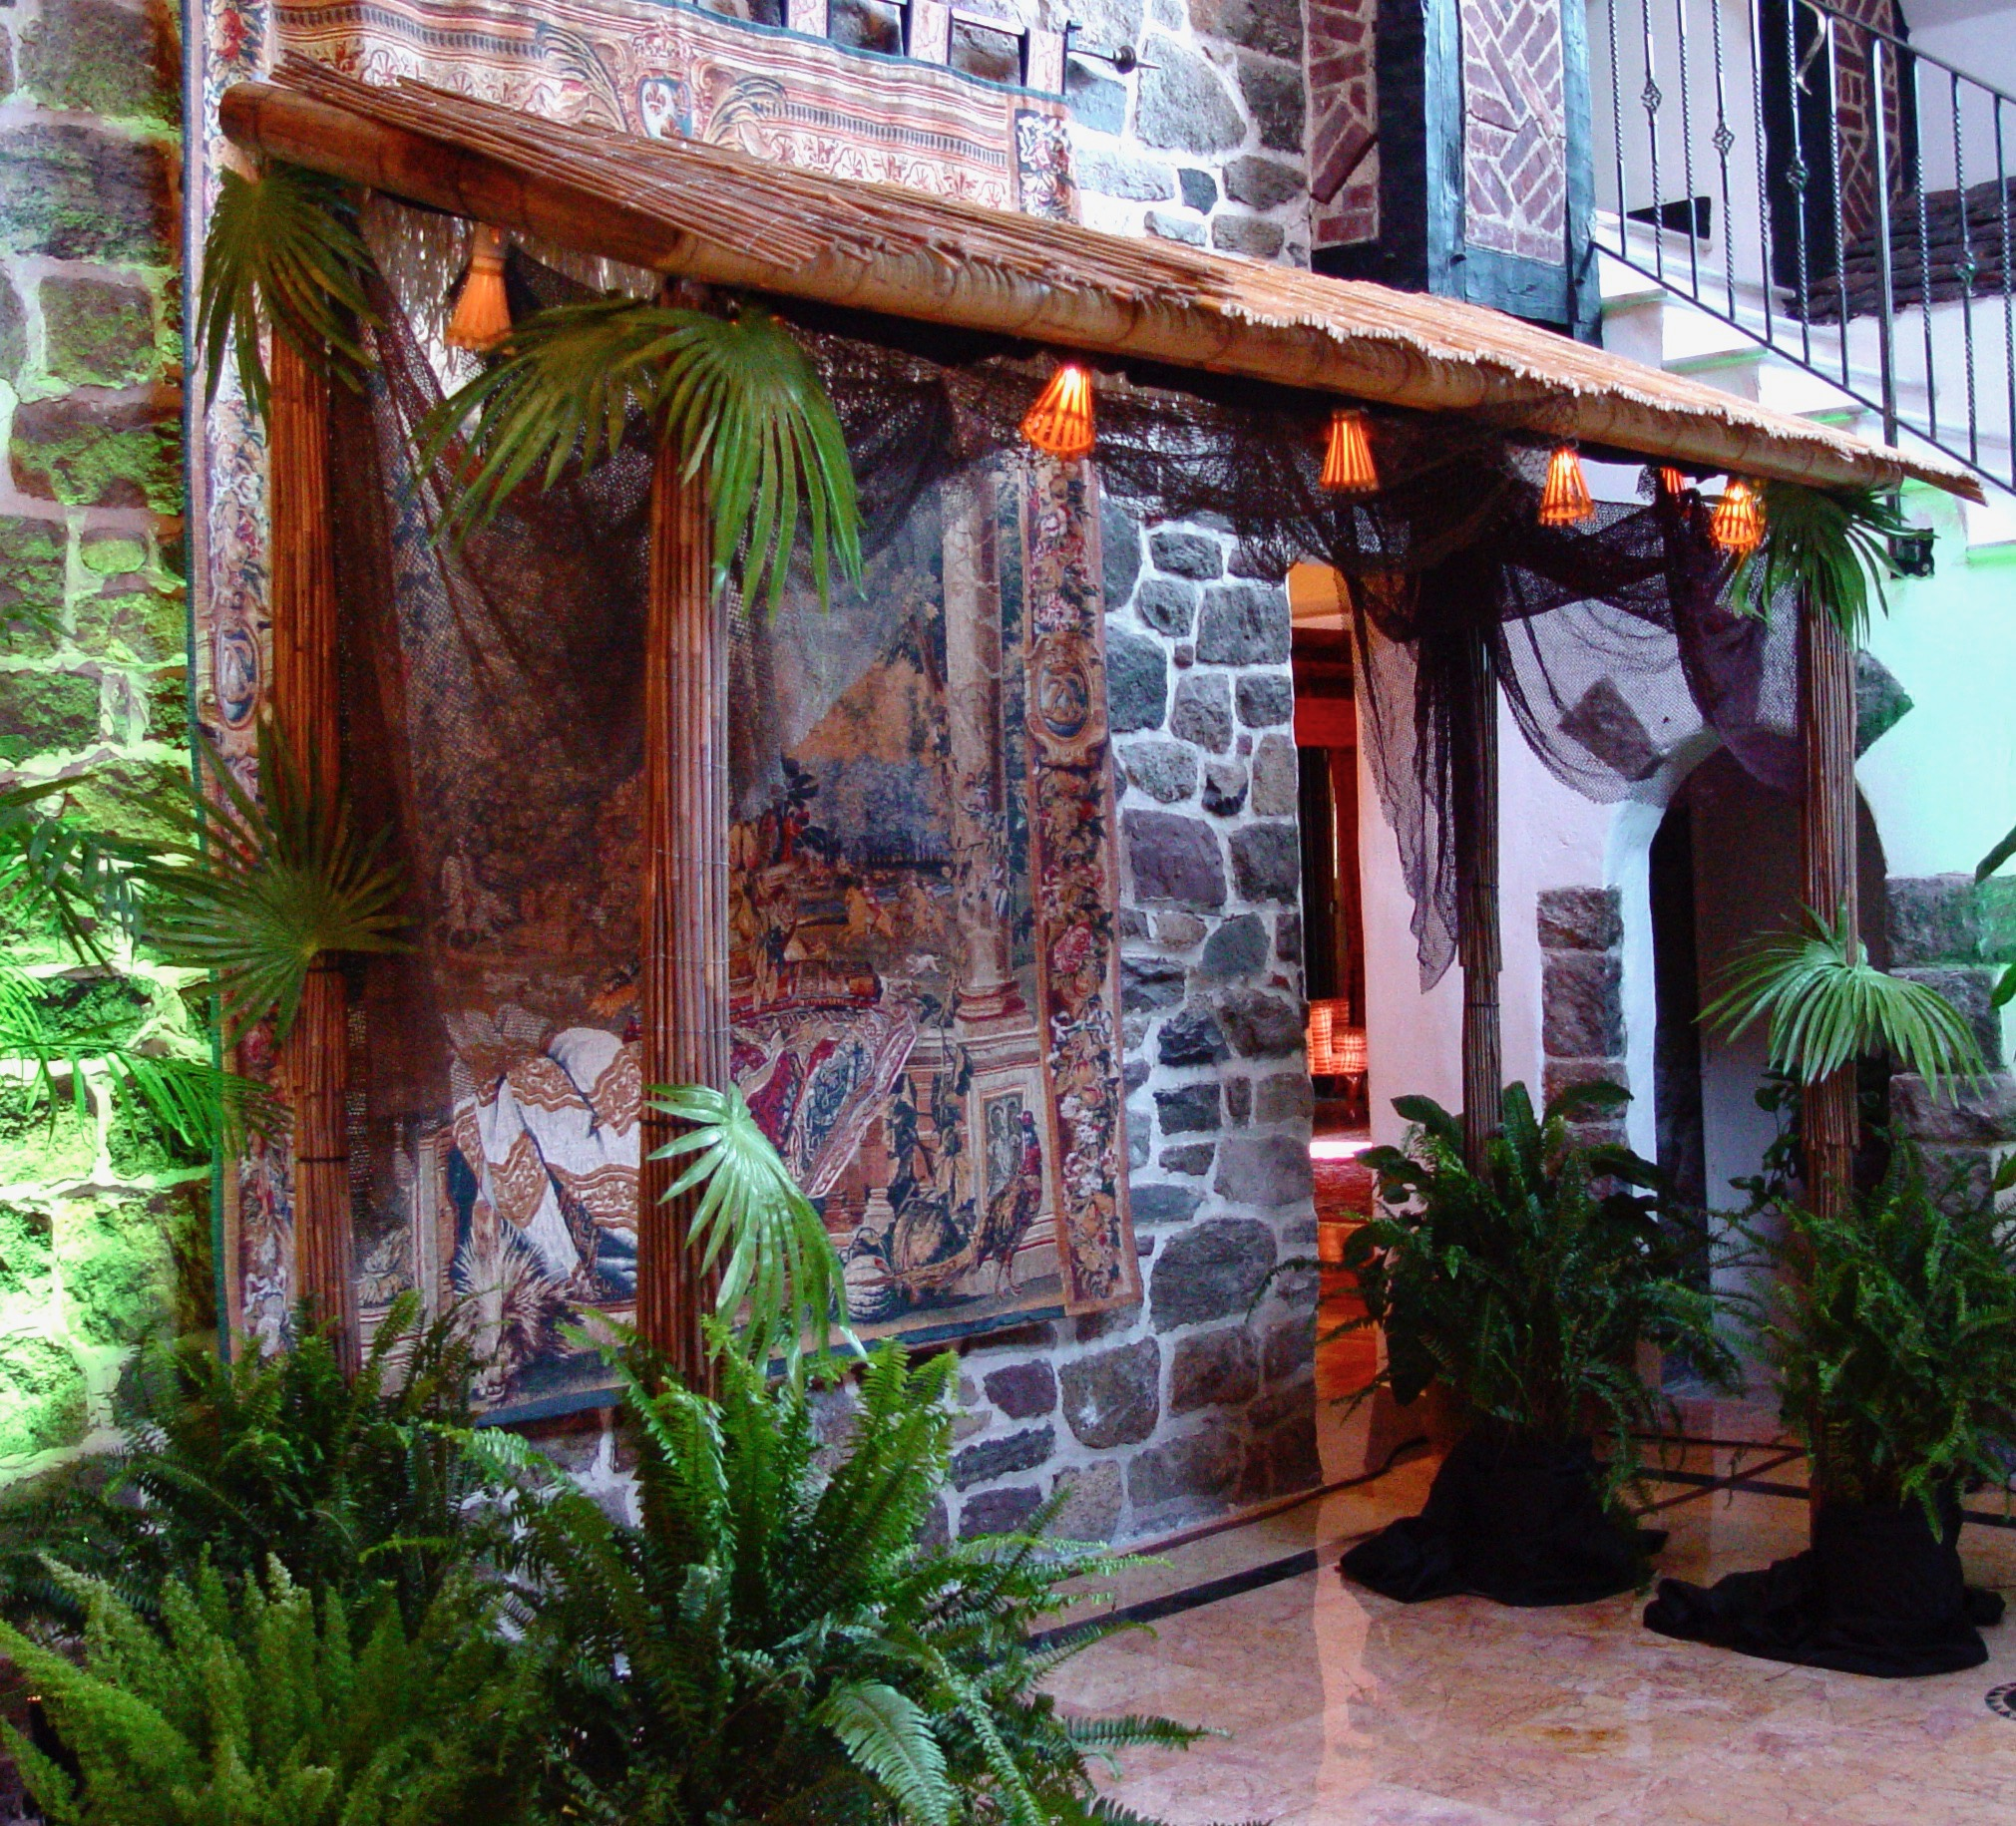 tiki+bar+surround+rental+cuba+theme+havana+props+rentals+event+decor+nj+ny+pa+eggsotic+events.jpeg